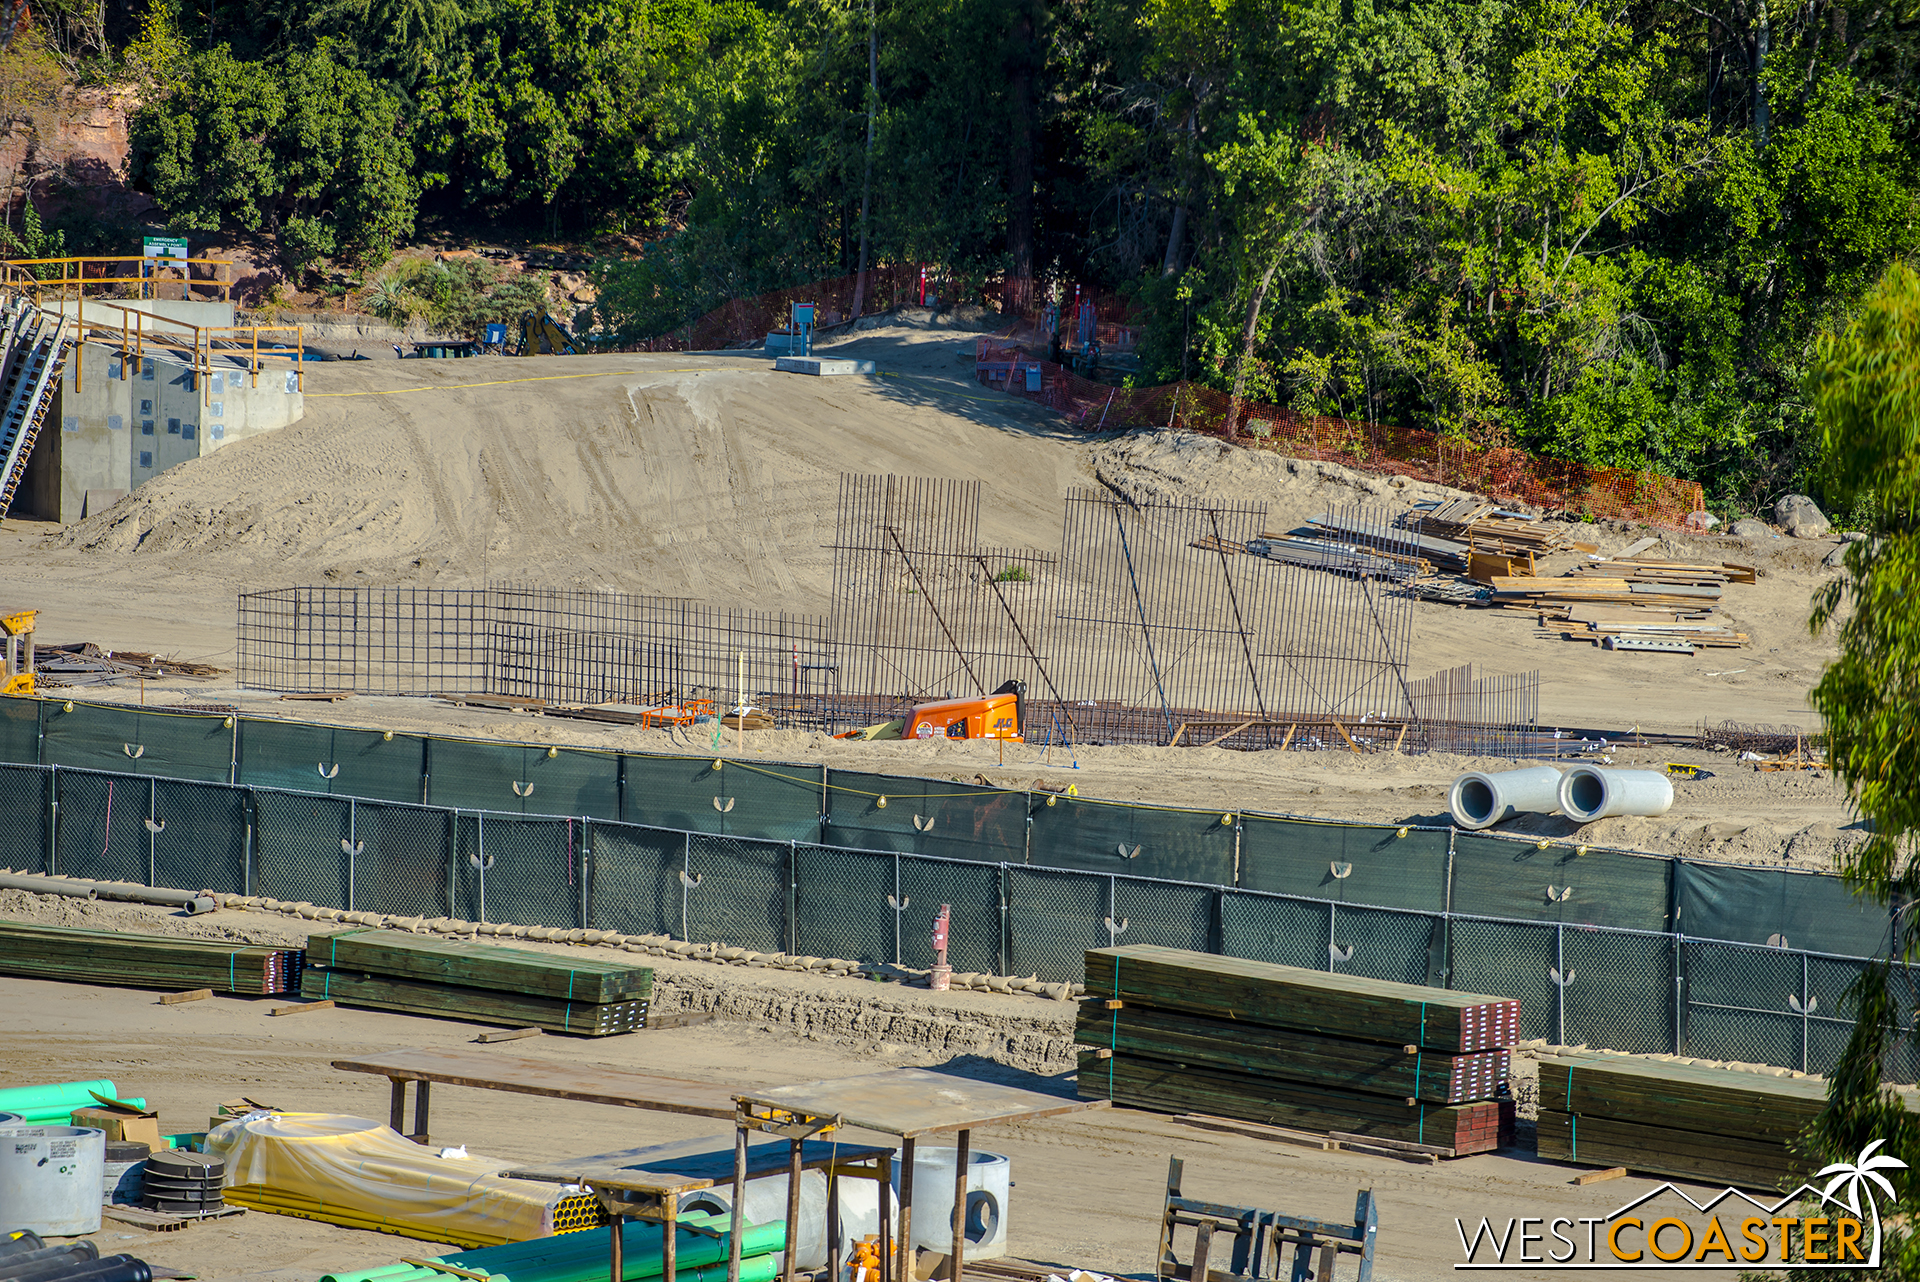 Who's excited for NuFantasmic?